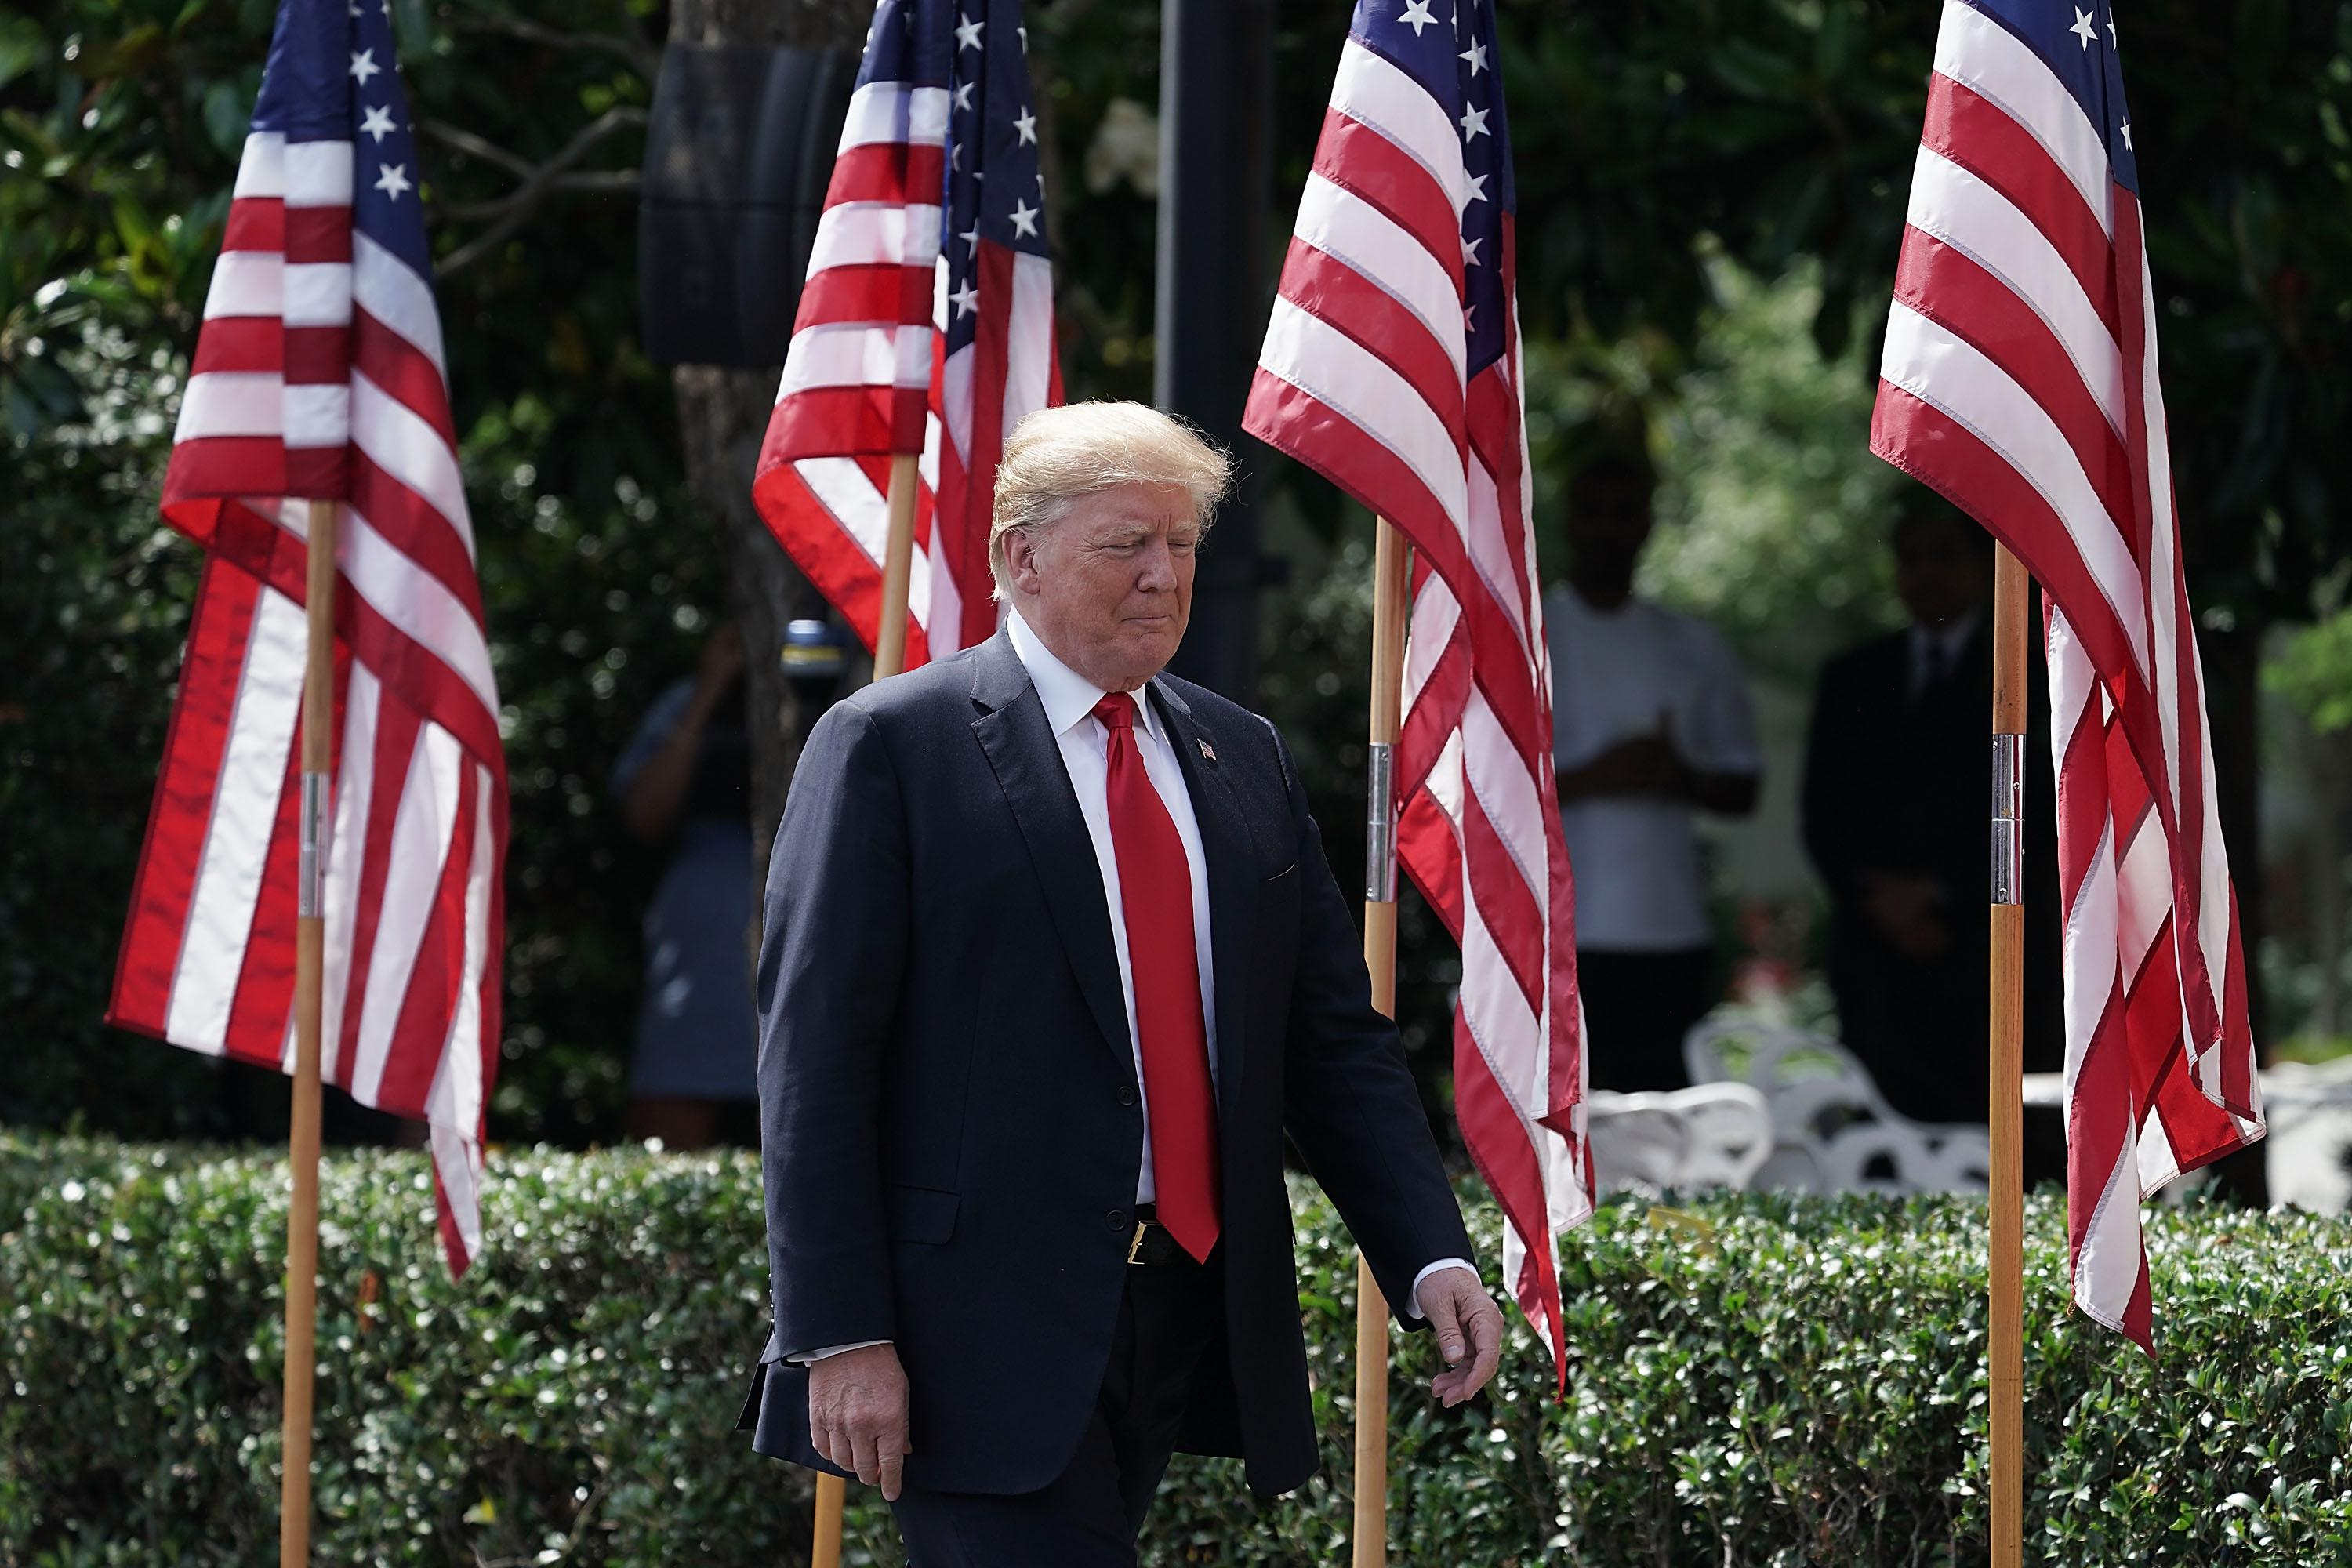 WASHINGTON, DC - JUNE 05:  U.S. President Donald Trump arrives at a 'Celebration of America' event on the south lawn of the White House June 5, 2018 in Washington, DC. The event, originally intended to honor the Super Bowl champion Philadelphia Eagles, was changed after the majority of the team declined to attend the event due to a disagreement with Trump over NFL players kneeling during the national anthem.  (Photo by Alex Wong/Getty Images)